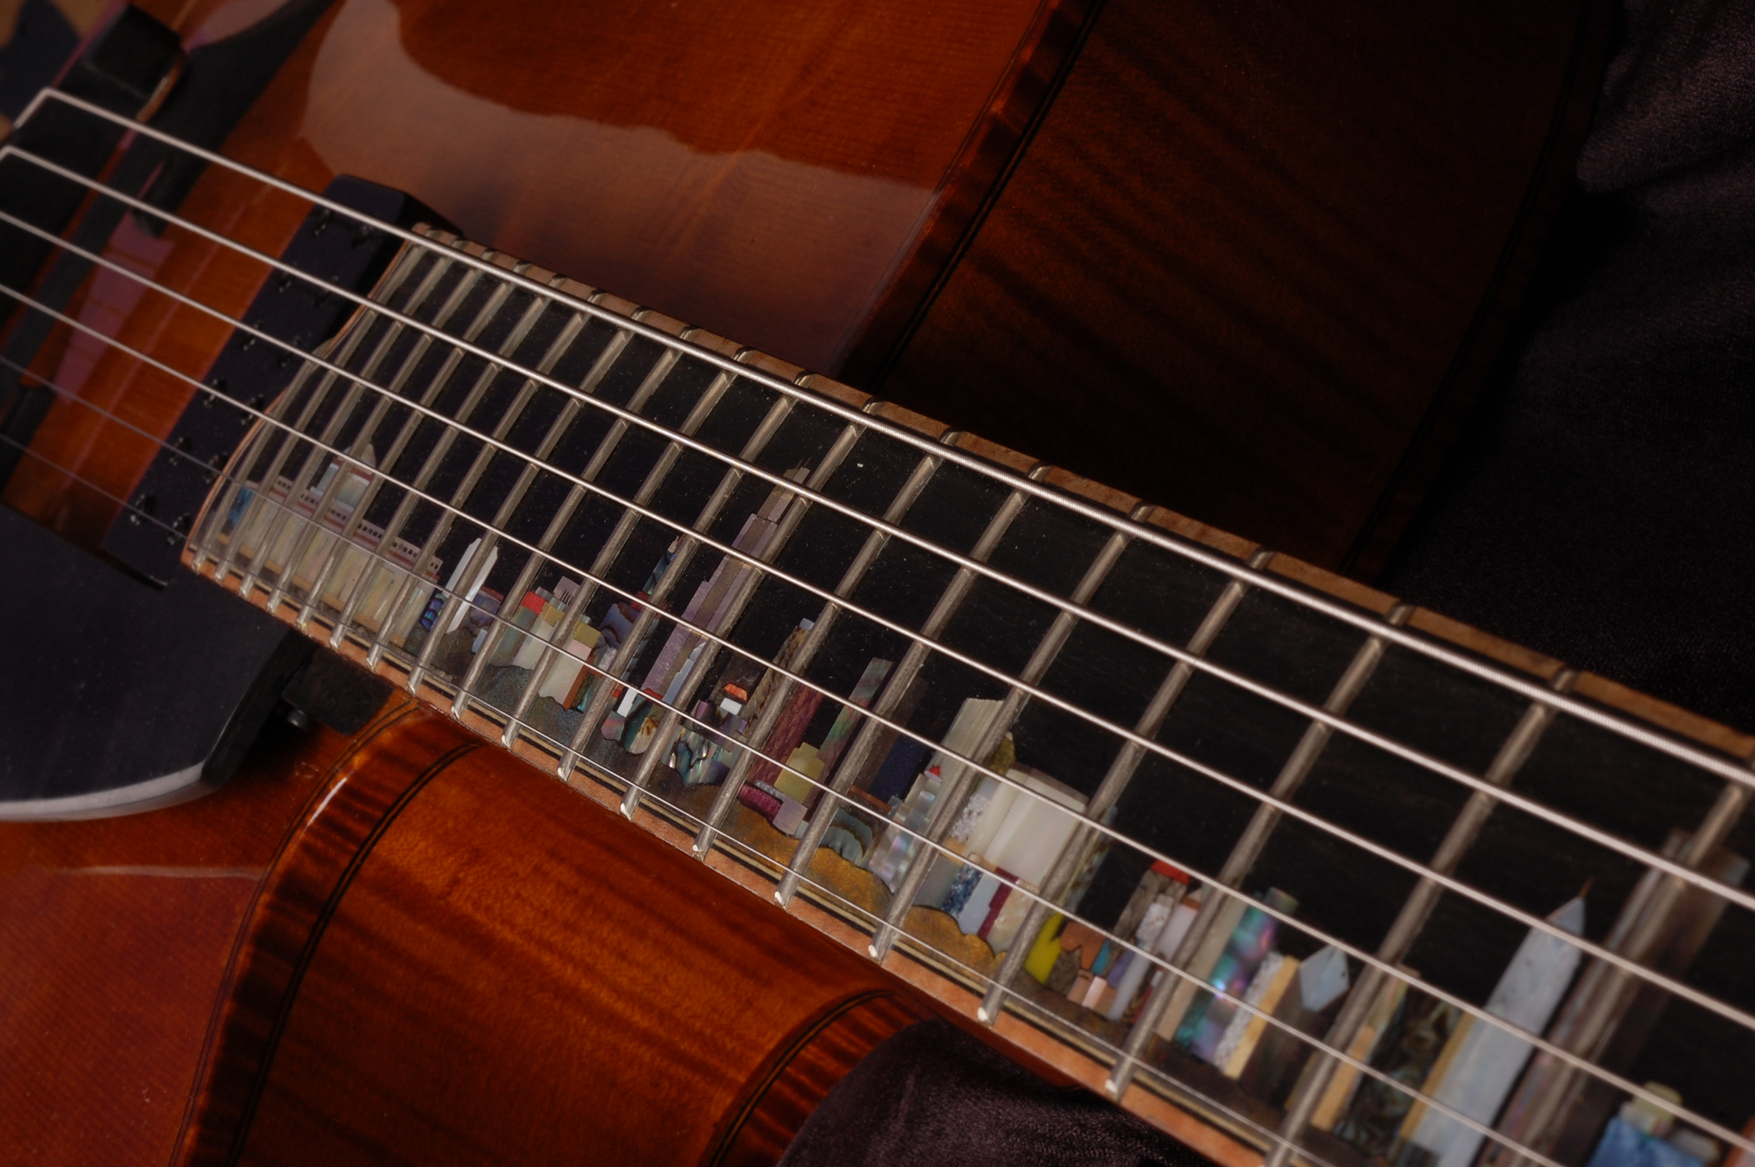 Fingerboard inlay in perspective